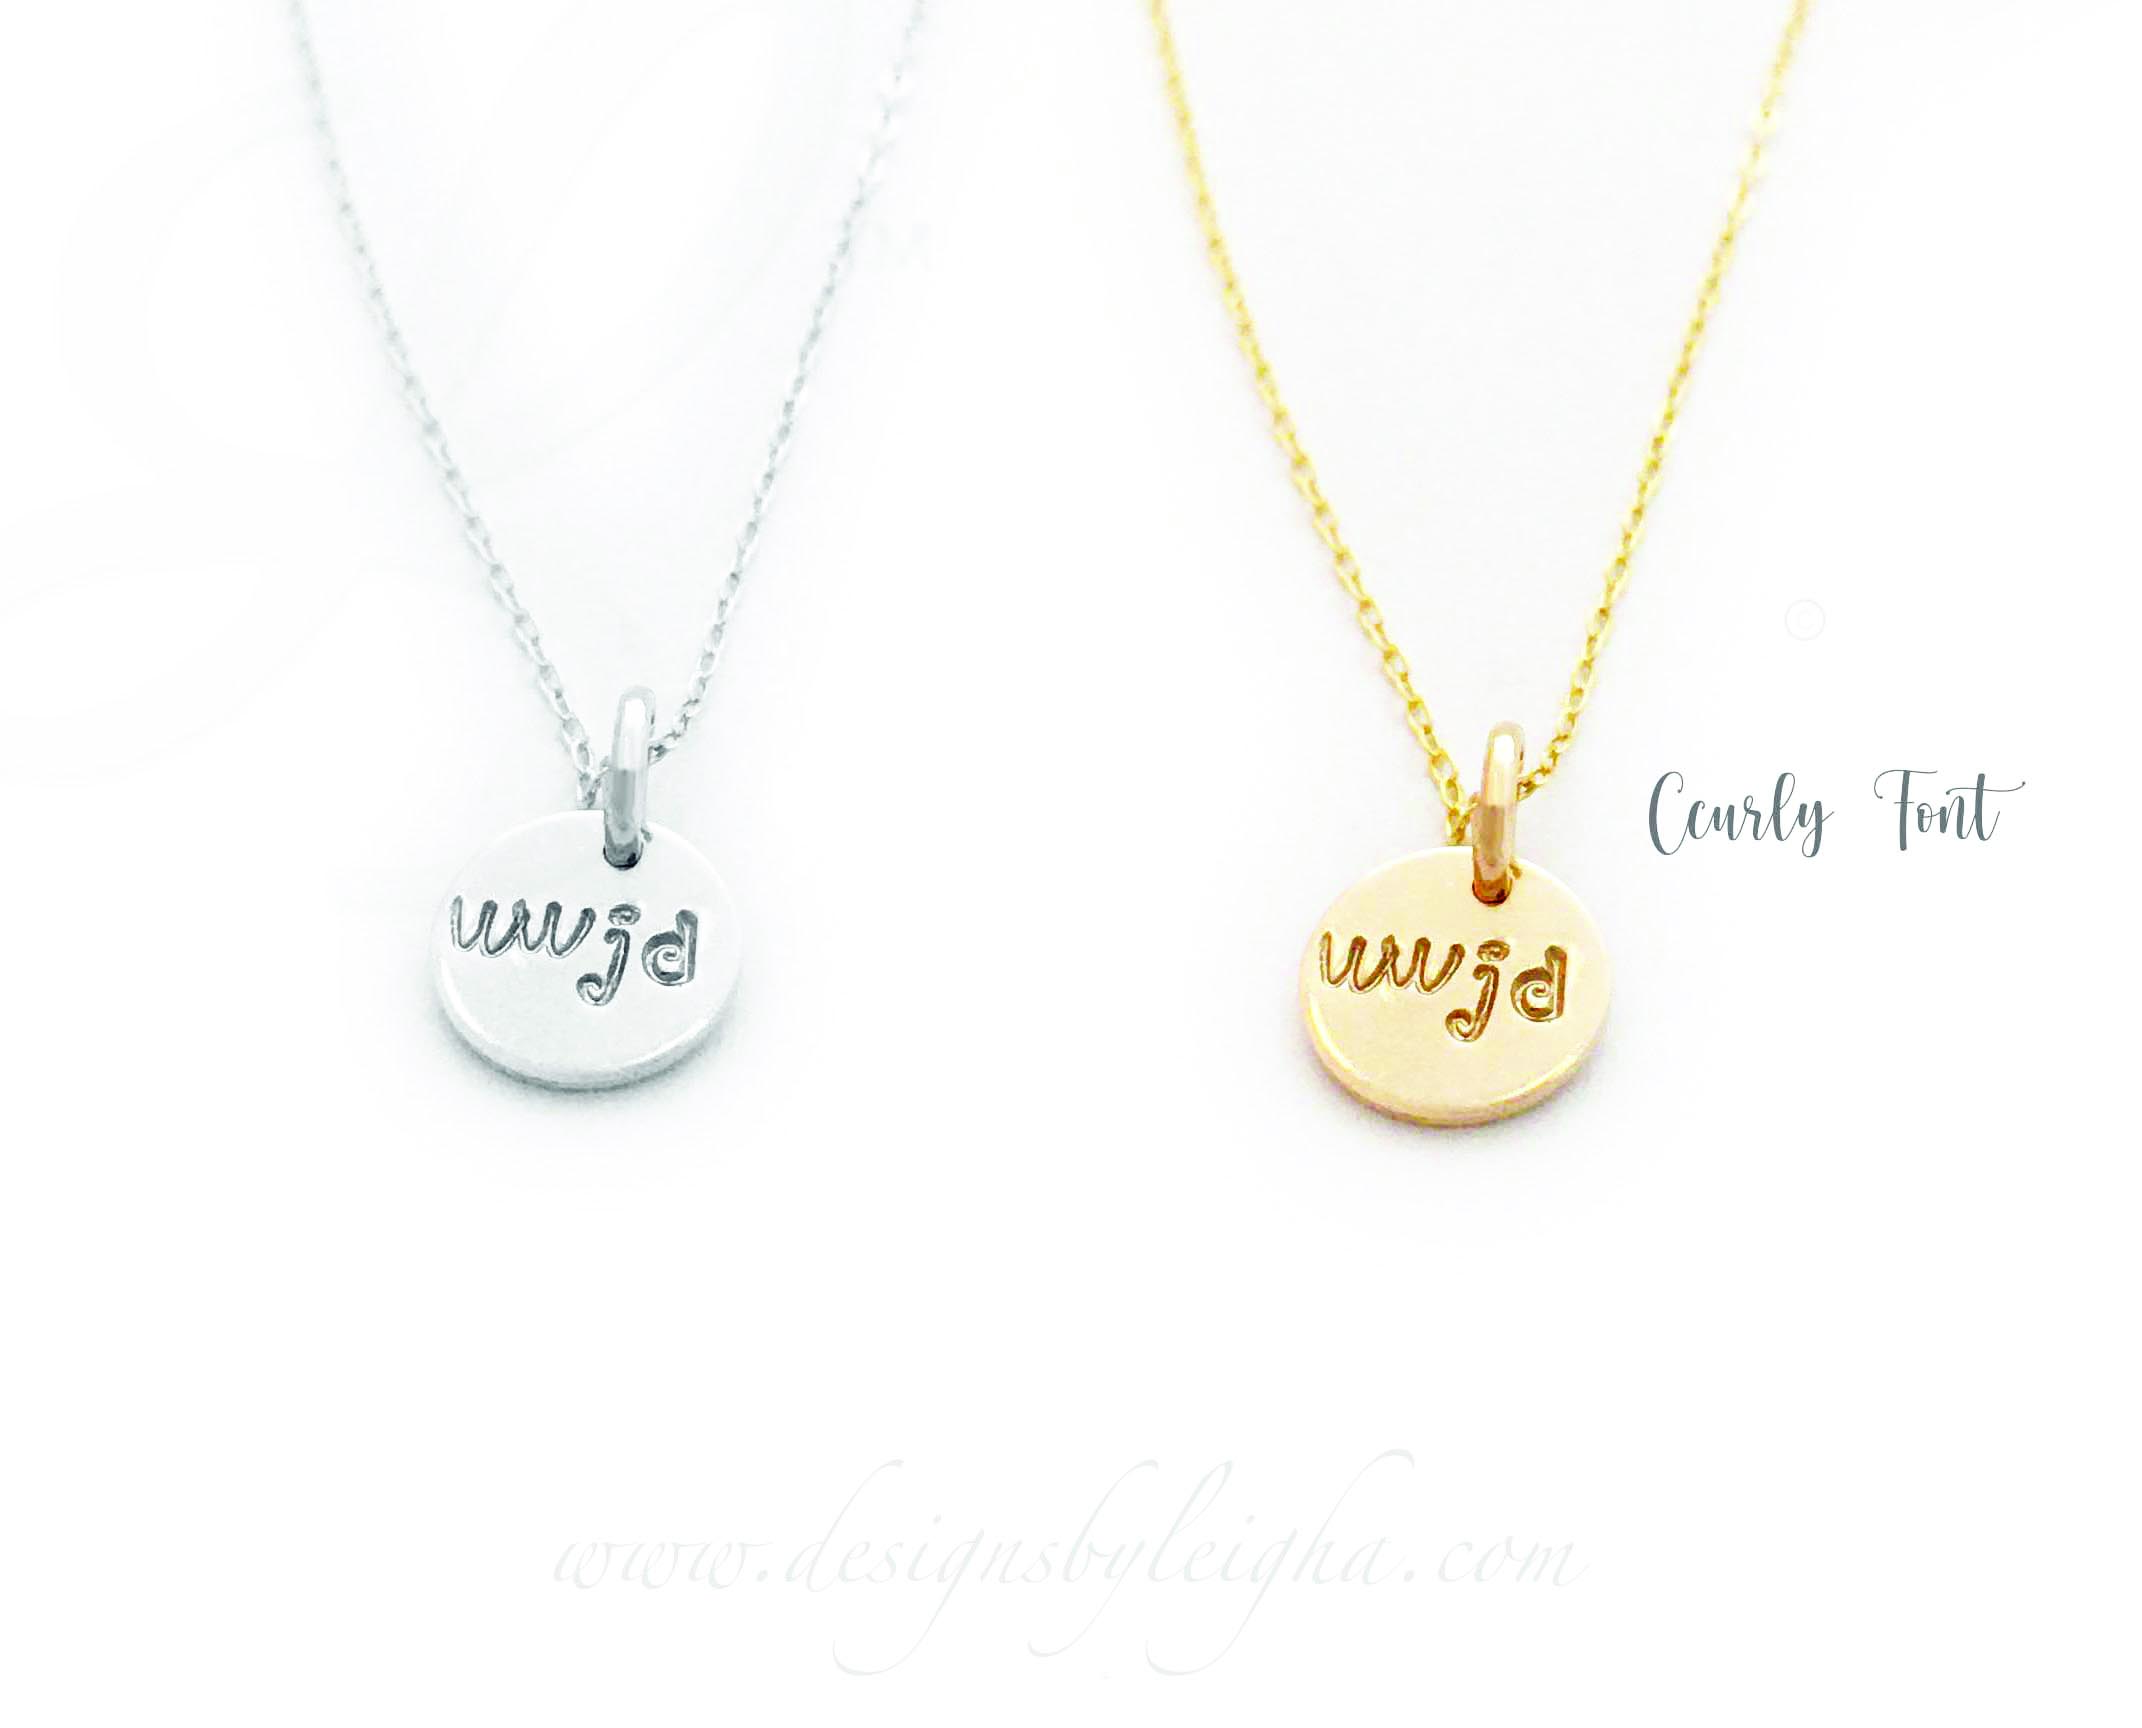 Gold WWJD Necklace with WWJD hand-stamped, with the Curly 3mm font, onto a 9mm gold or sterling silver charm / pendant.